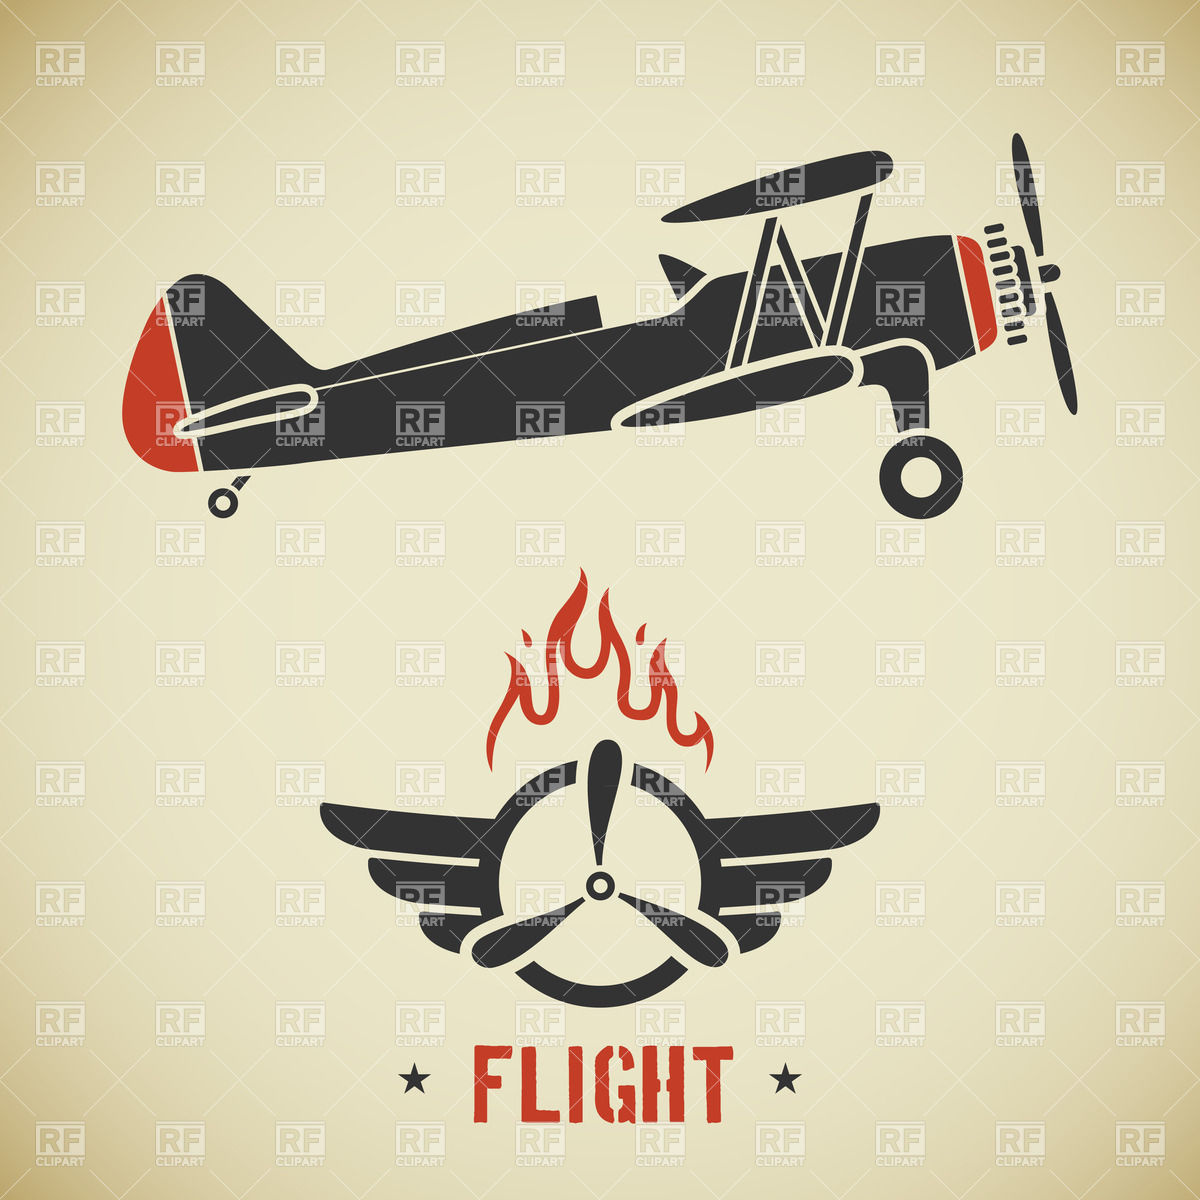 1200x1200 Retro Plane (Biplane) And Emblem With Wings And Propeller Vector